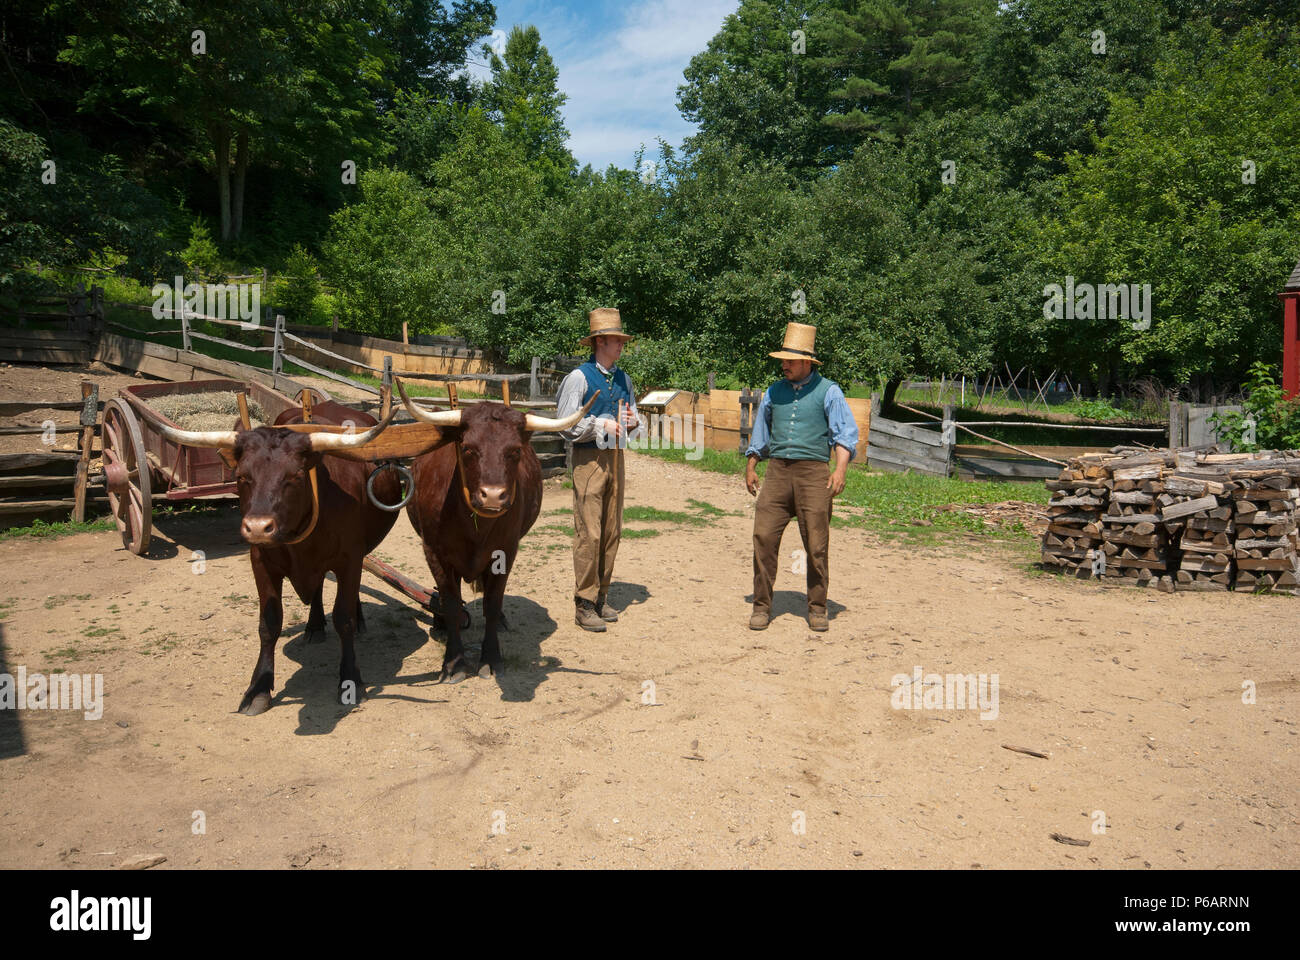 Farmers in traditional dress (nineteenth century) and cows at Old Sturbridge Village, Sturbridge, Worcester County, Massachusetts, USA - Stock Image